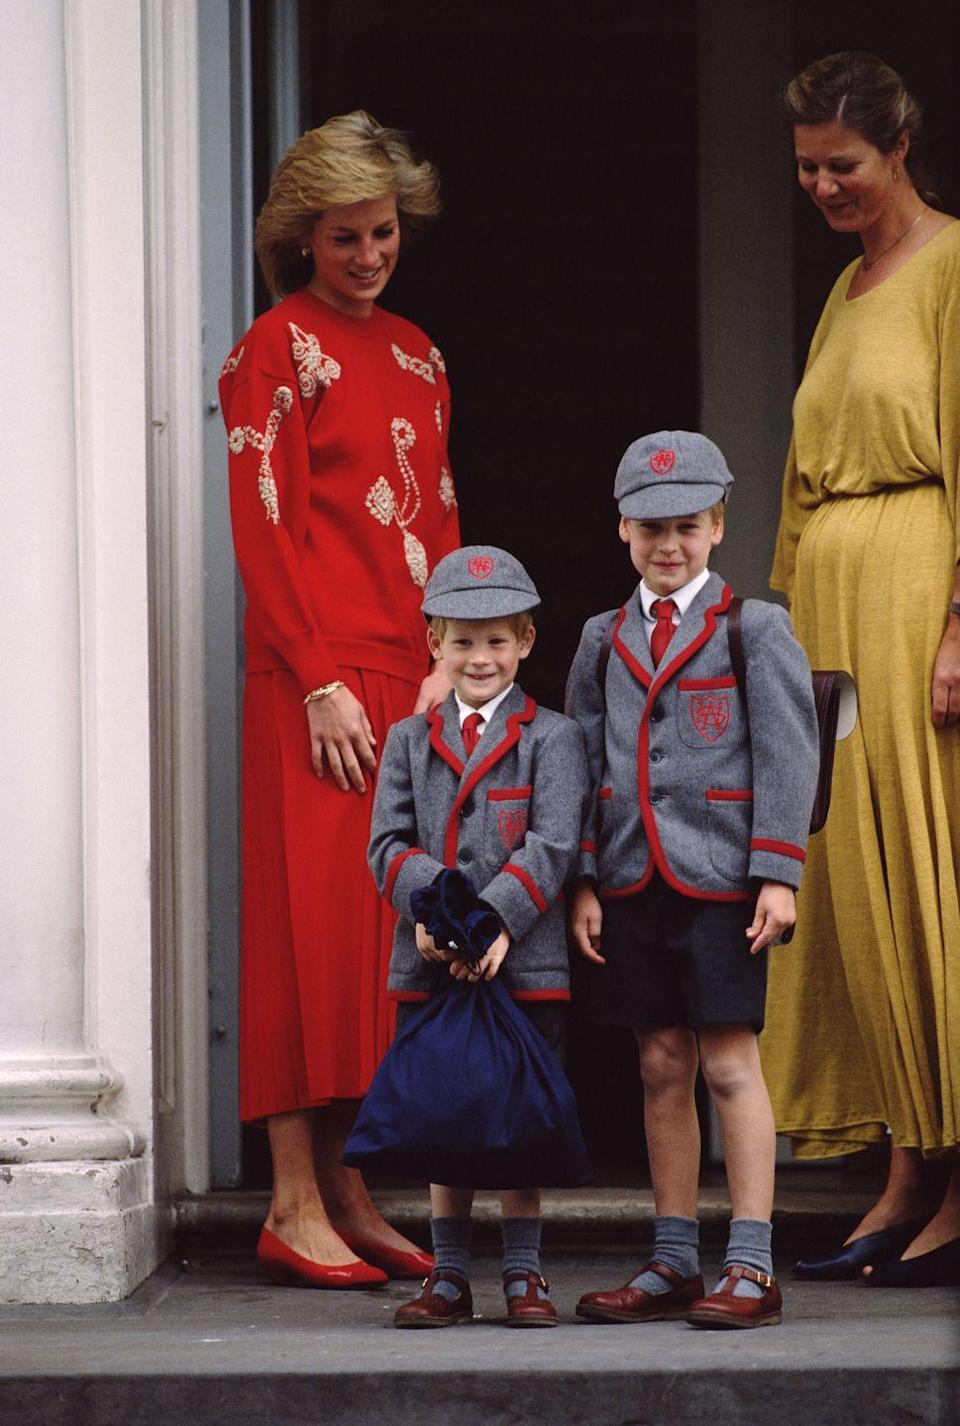 <p>Prince Harry didn't get his own 'first day of school' photograph. Instead, he shared the limelight with older brother William as the young royal prepared to enter reception class. Maybe this will be the set up with Princess Charlotte's photographs, too.</p>